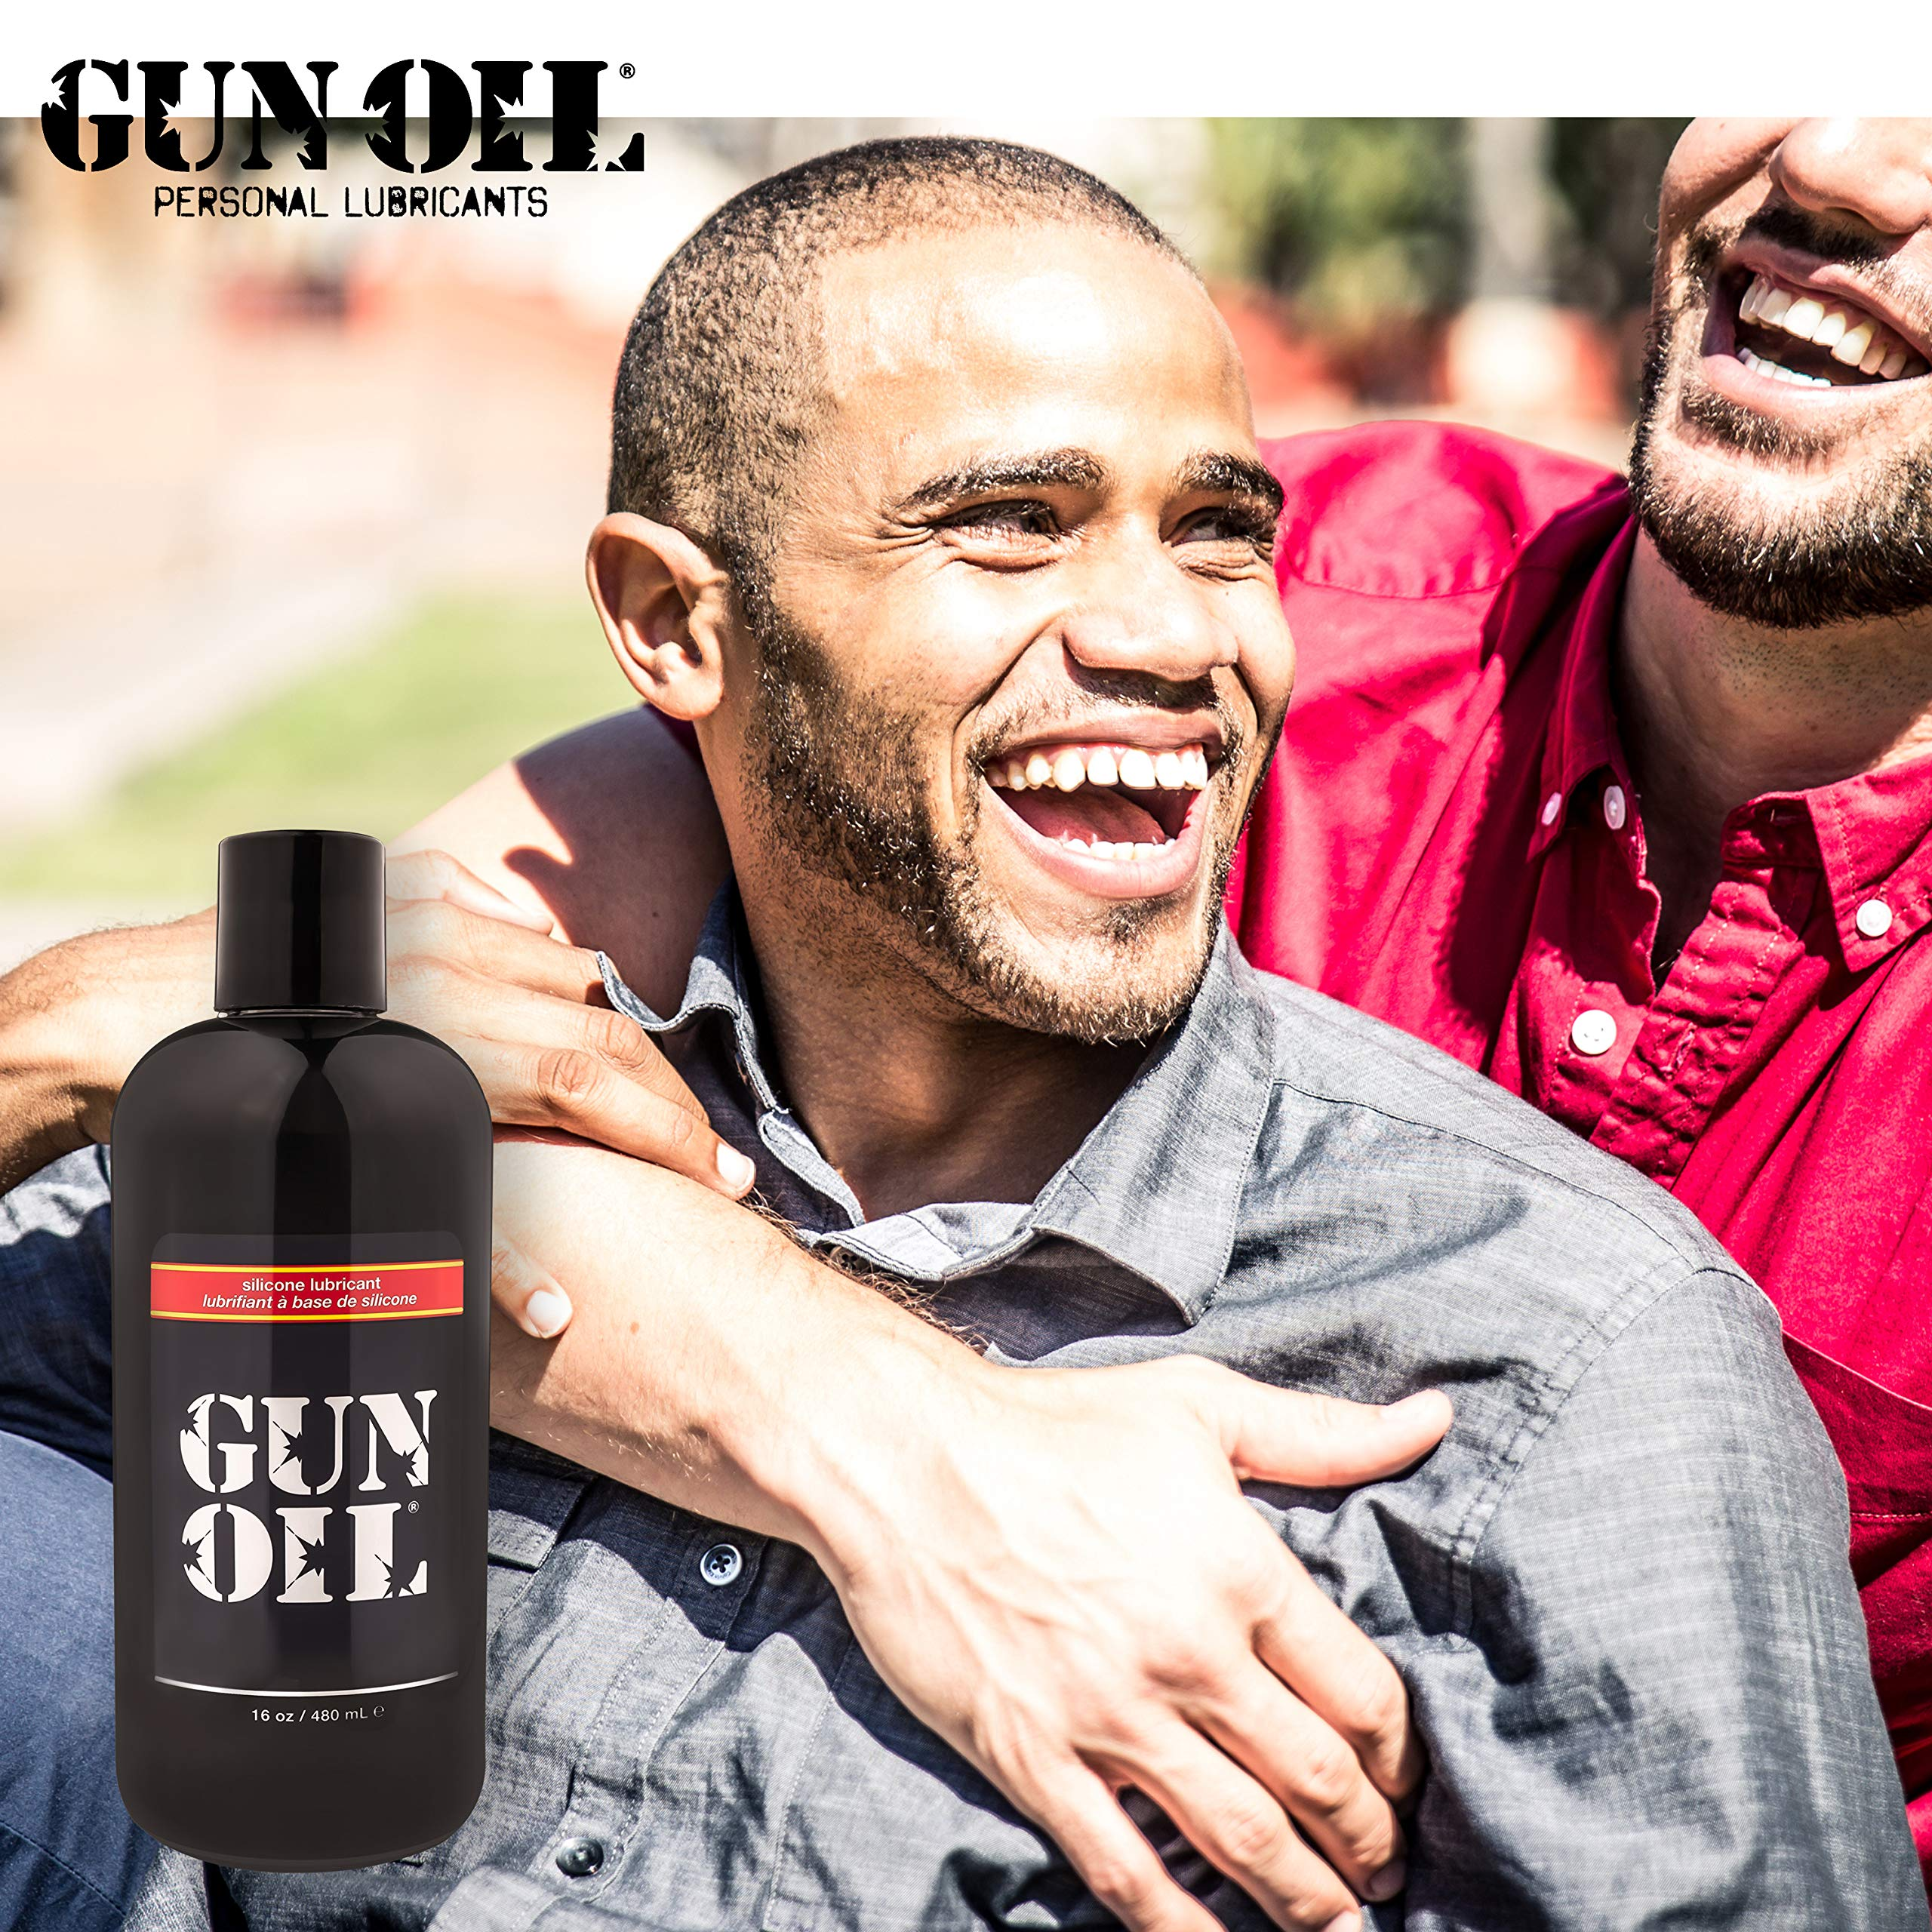 GUN OIL Silicone Lubricant - Hypoallergenic Silicone-Based Lubricant for Long-Lasting Lubrication (16 oz) by Gun Oil (Image #6)